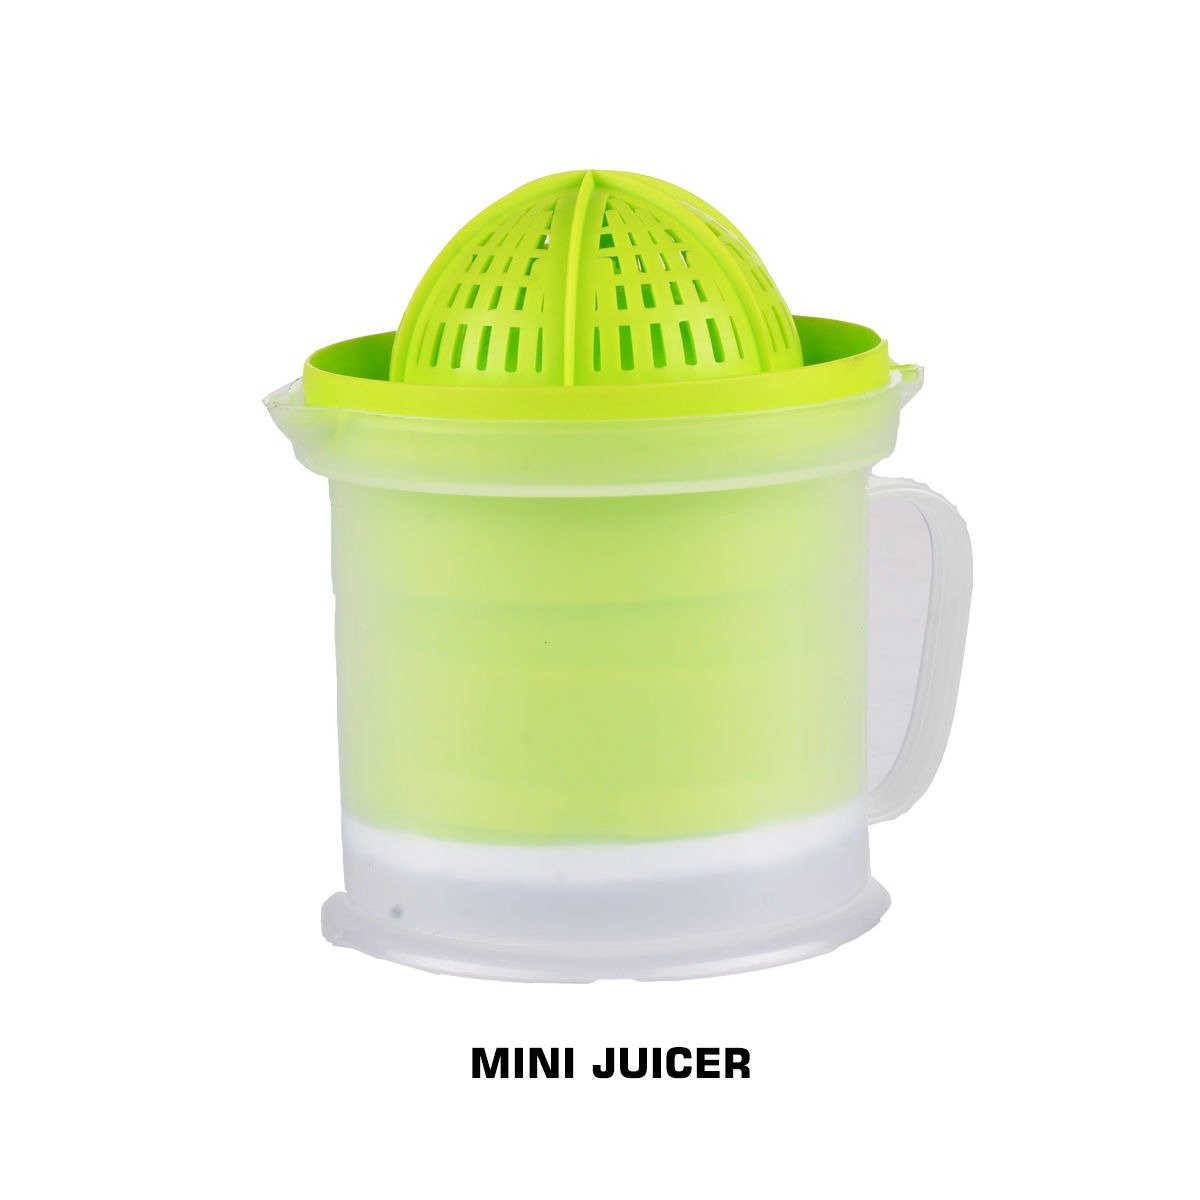 2050 Manual Orange Juicer Squeezer